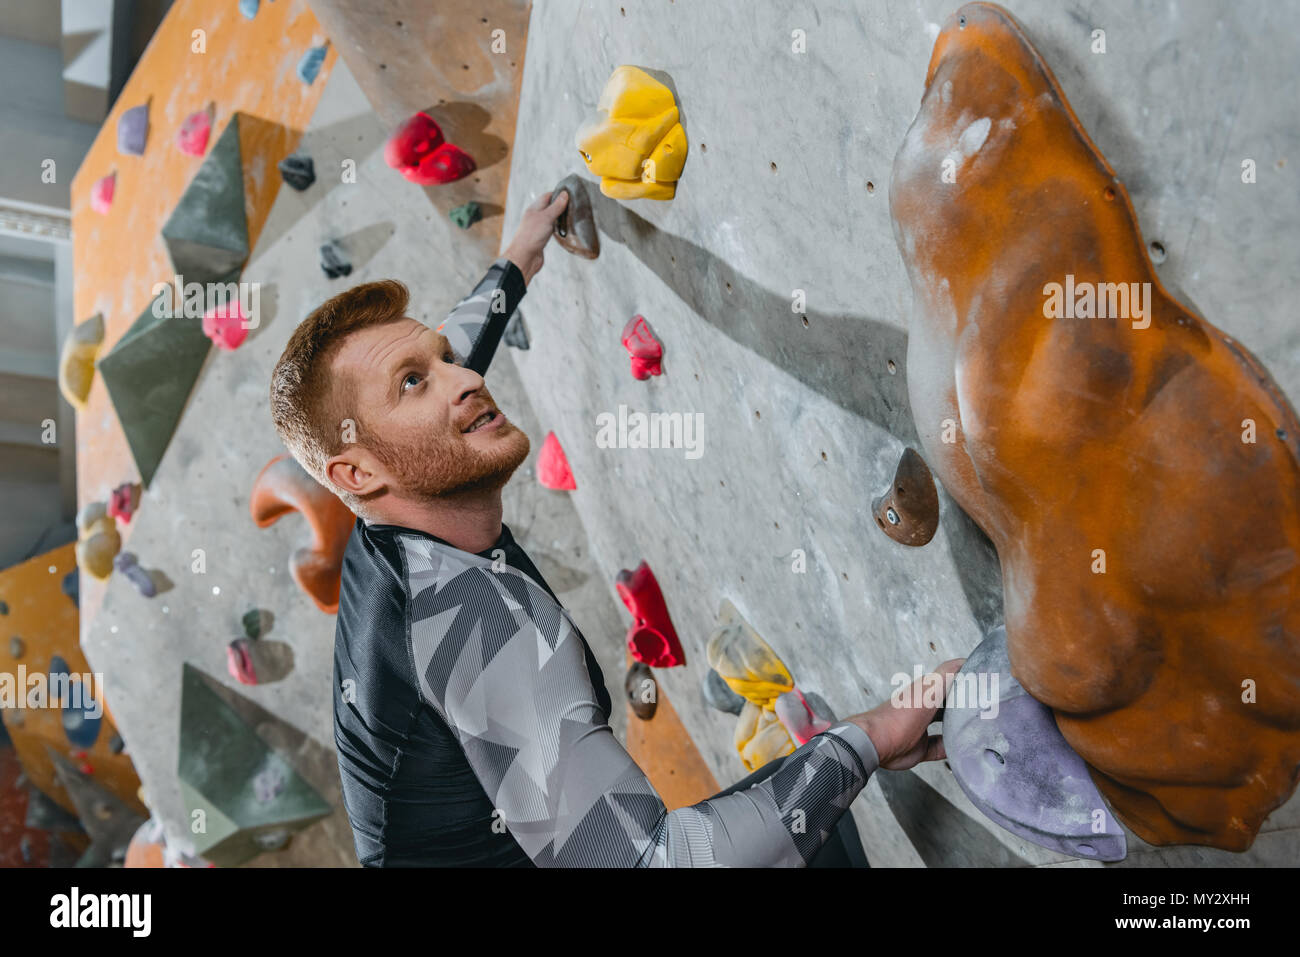 half-length shot of young man in sportive attire climbing a wall with grips at gym Stock Photo